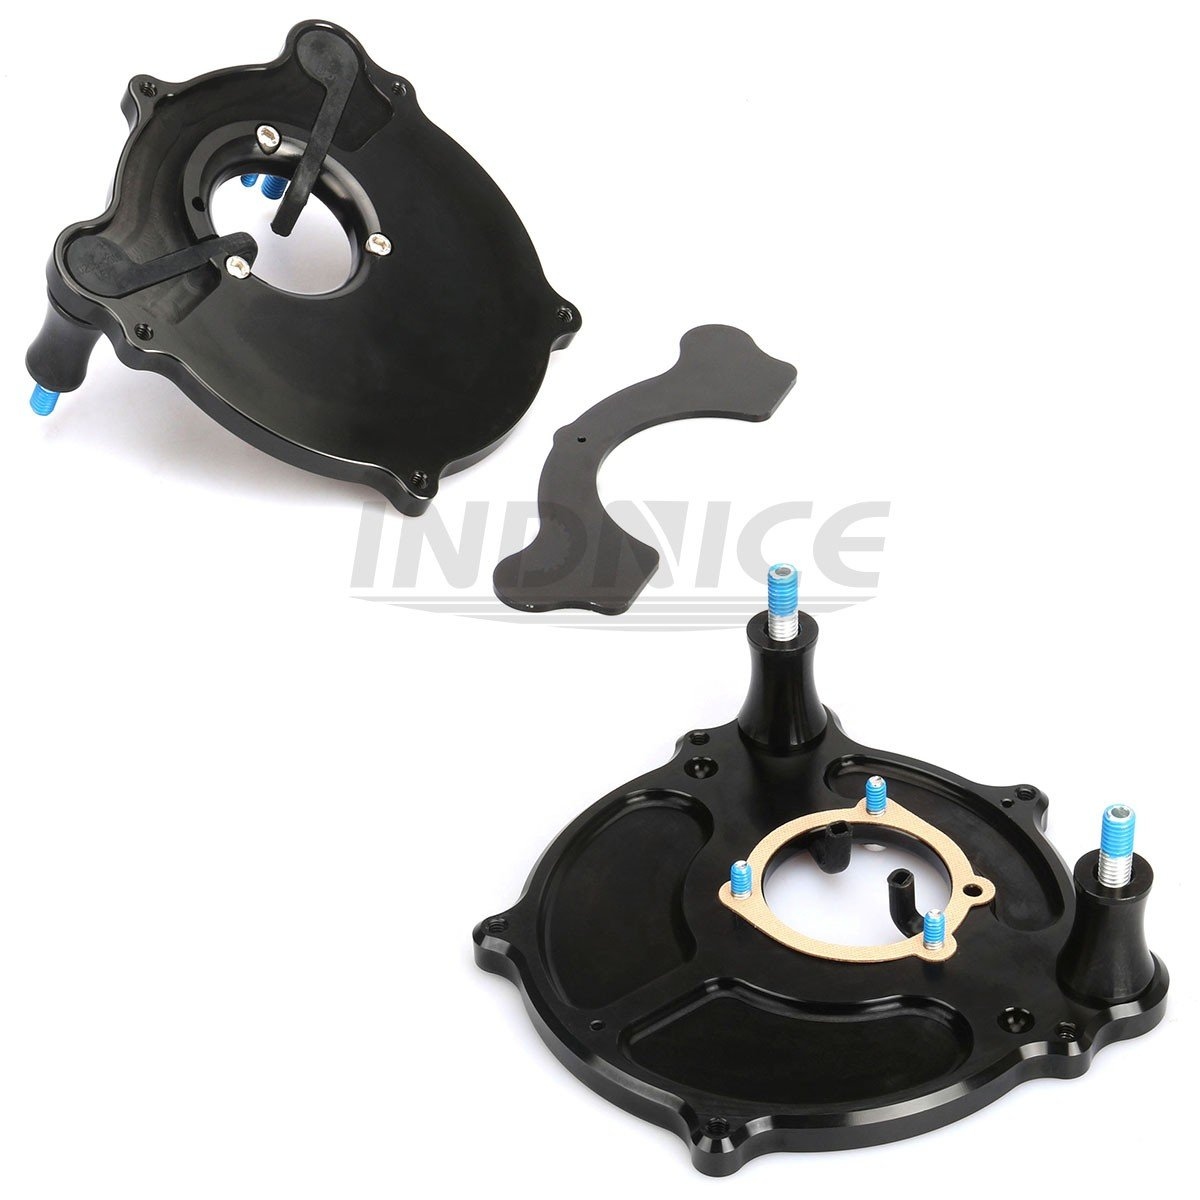 CNC black Nostalgia Venturi Air intake system for harley Wide Glide FXDWG air filter FLHR air intakes for harley touring 00-07